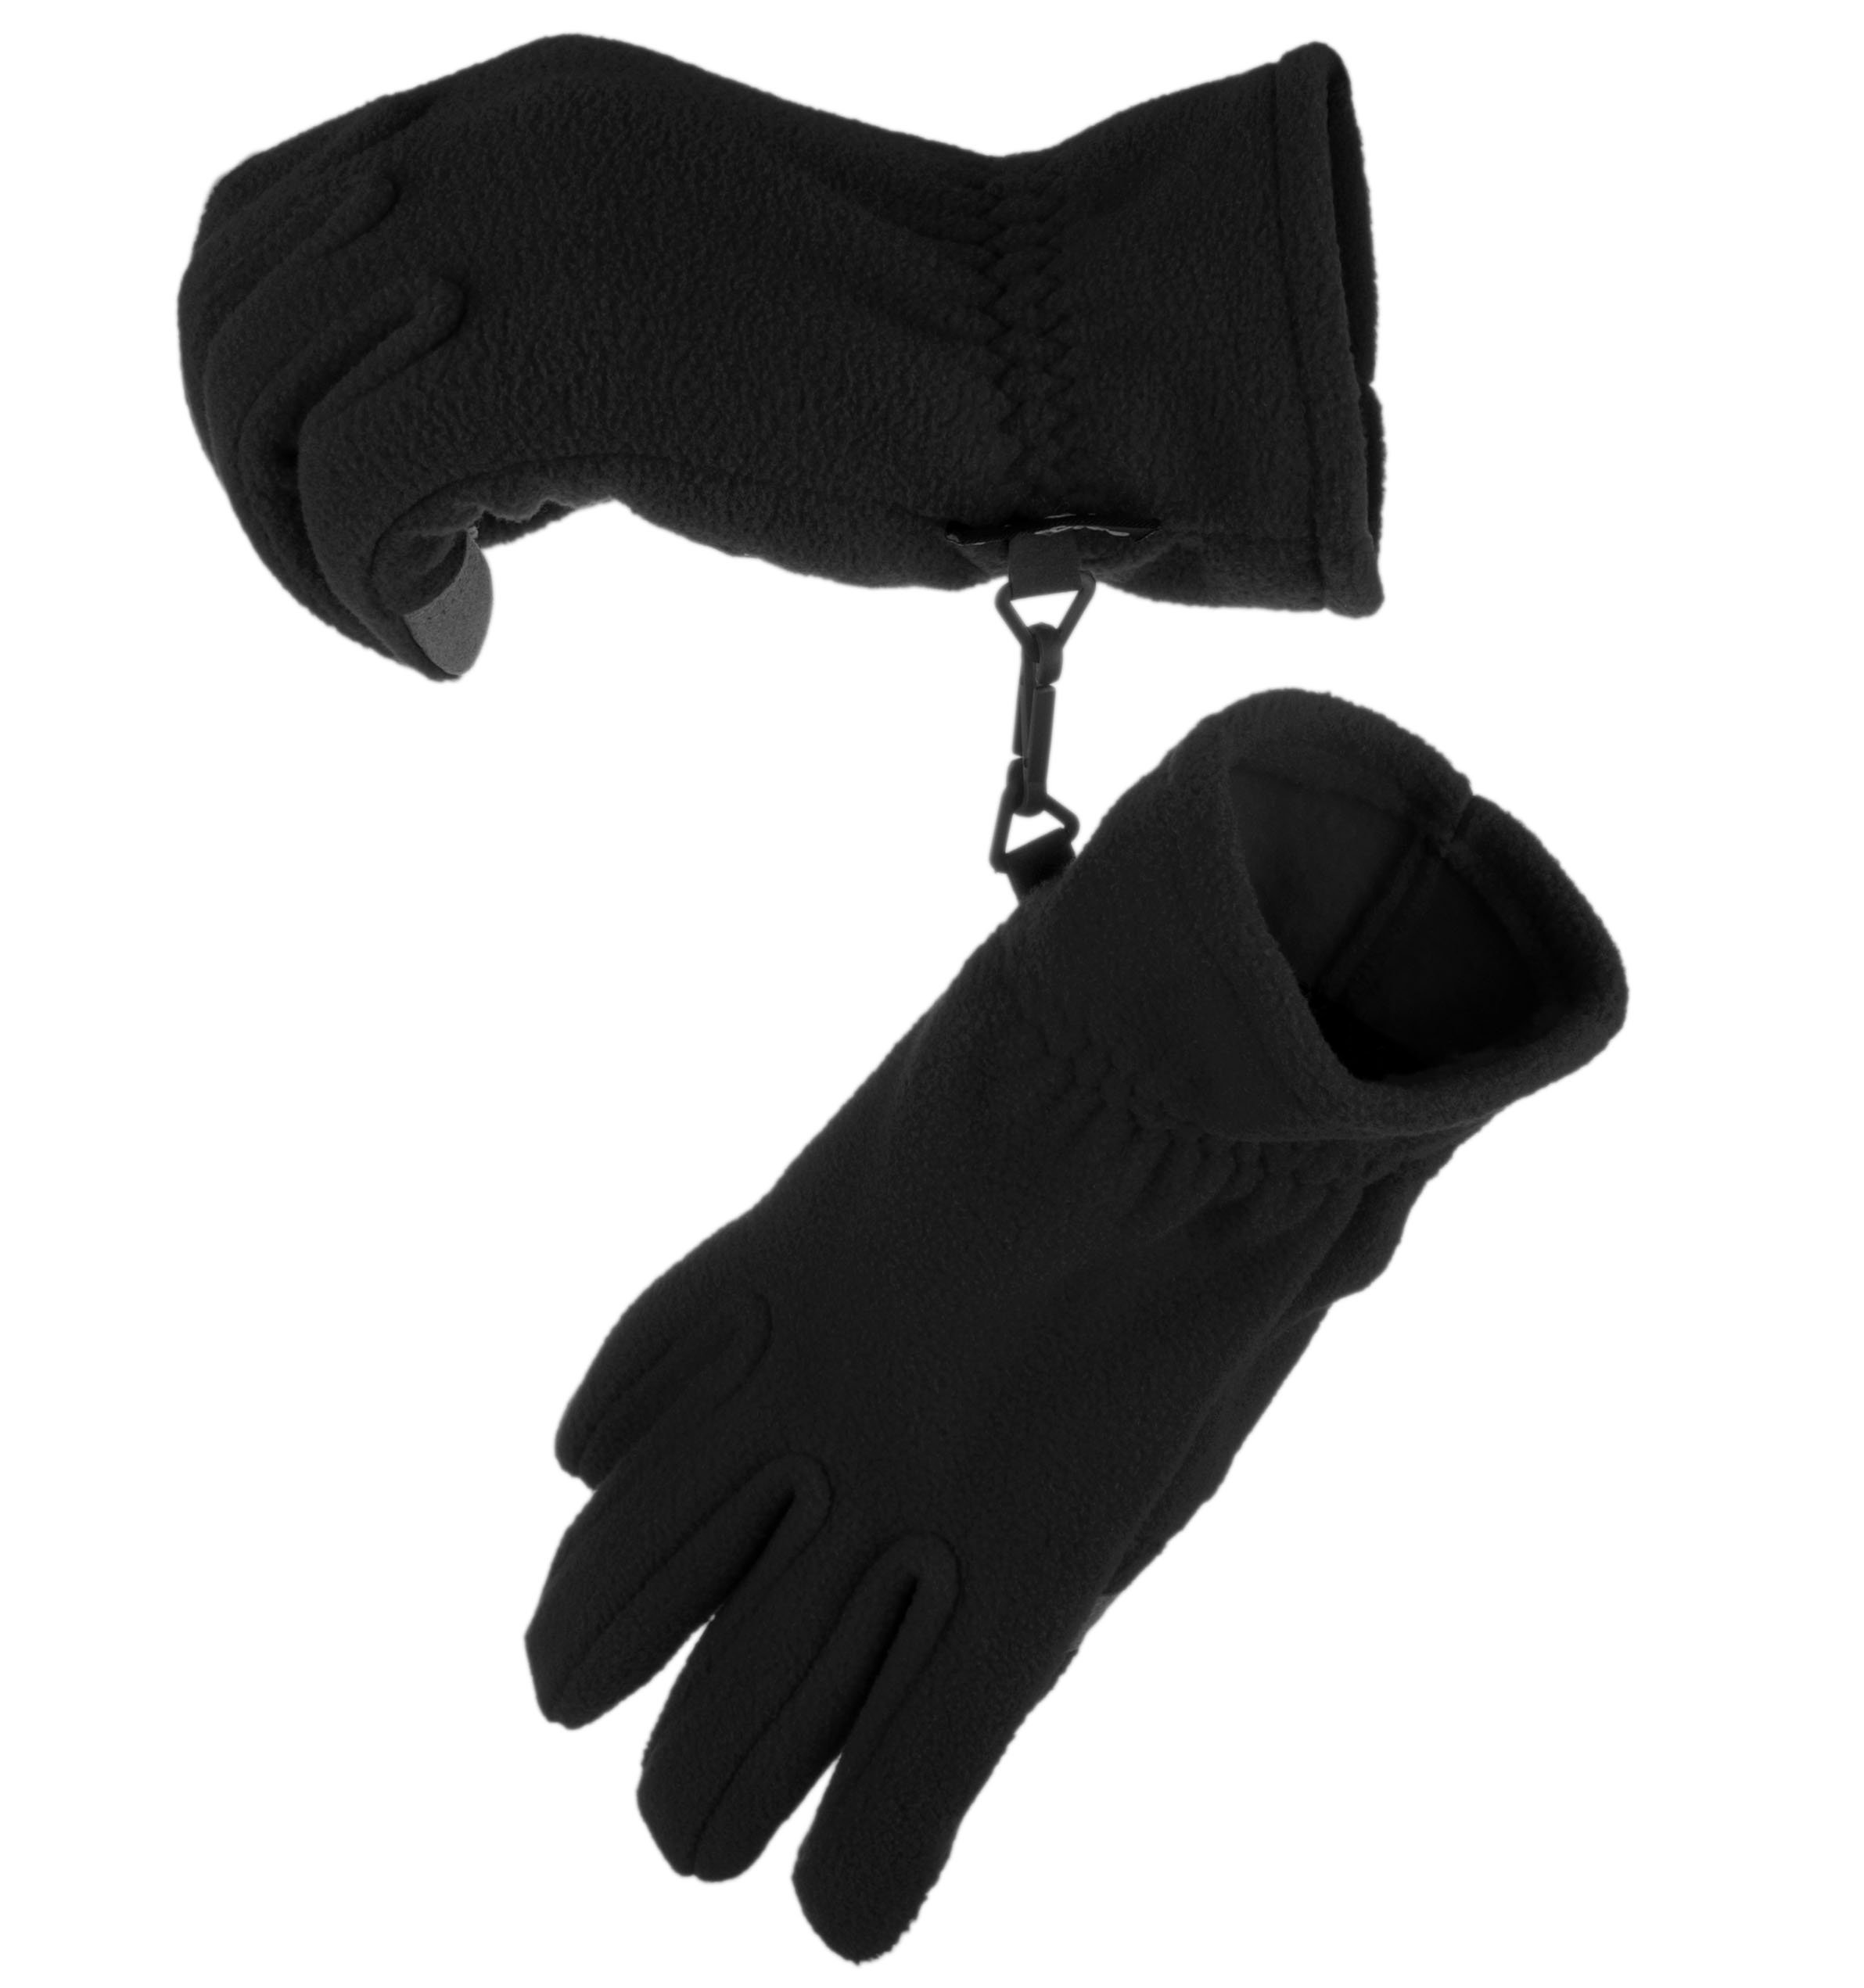 Knolee Men&Women Winter Glove Outdoor Warm Fleece Gloves With TouchScreen,Black M